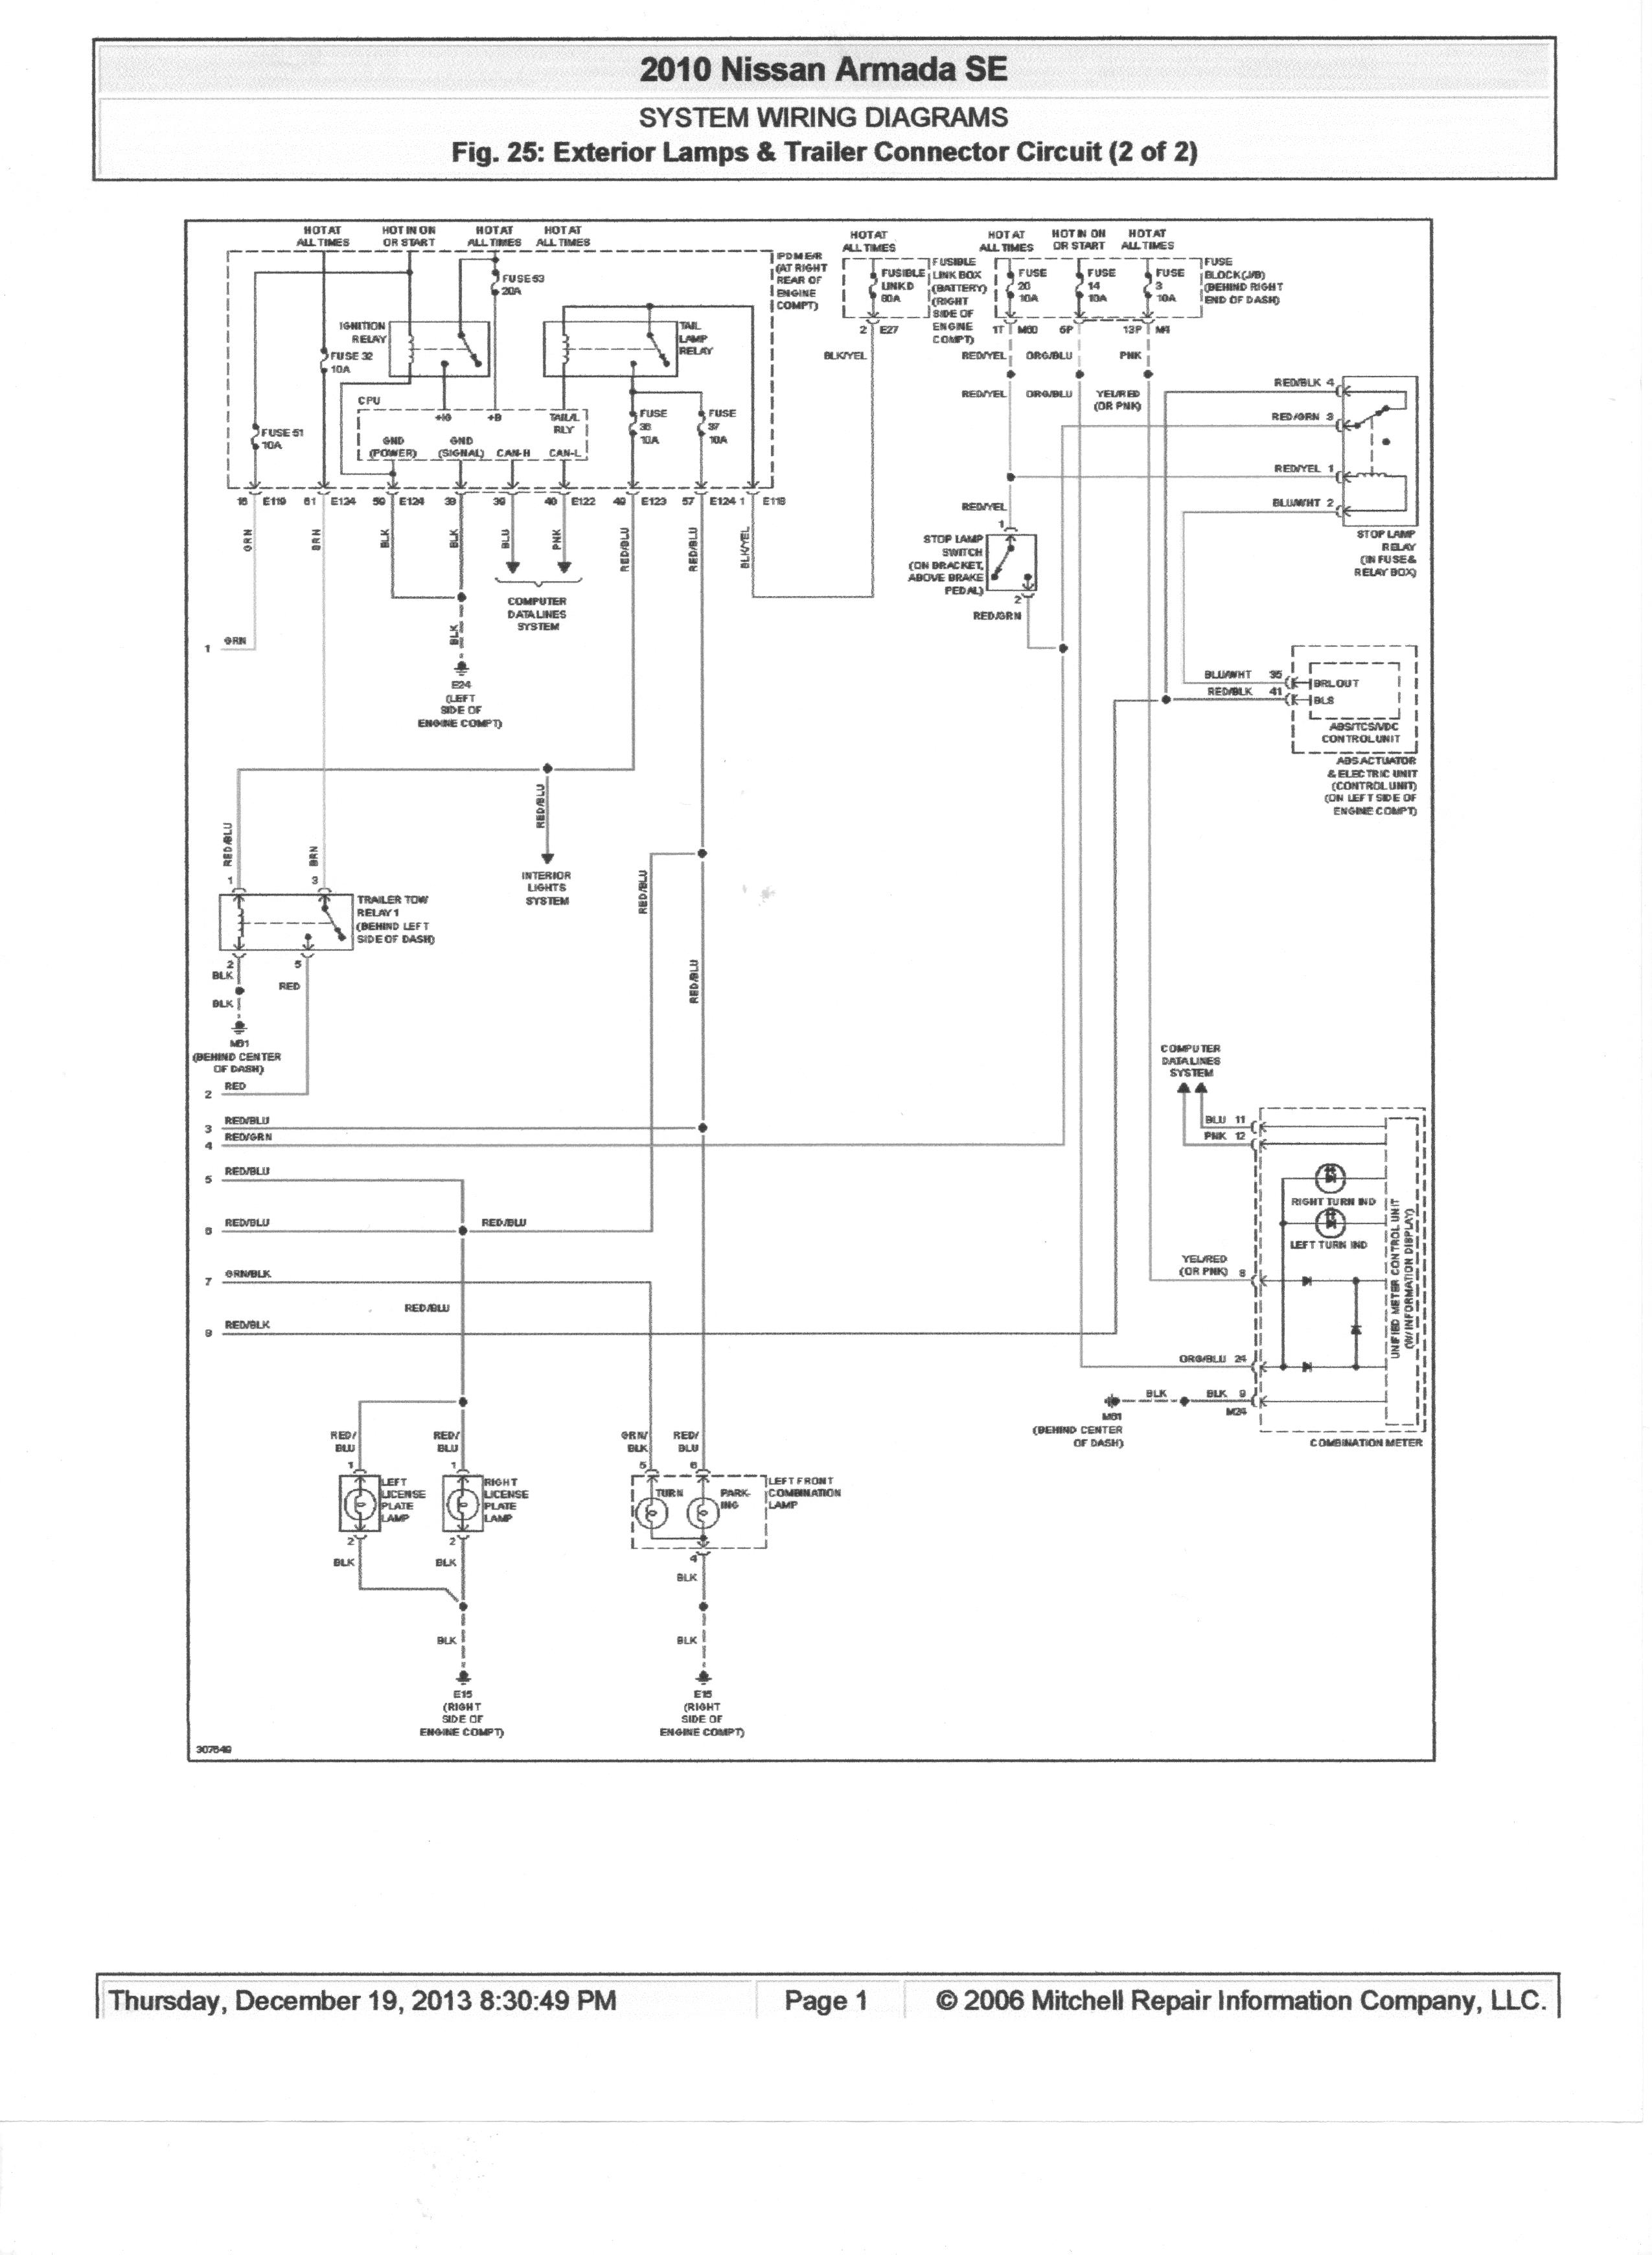 Nissan Titan Brake Controller Wiring from ww2.justanswer.com